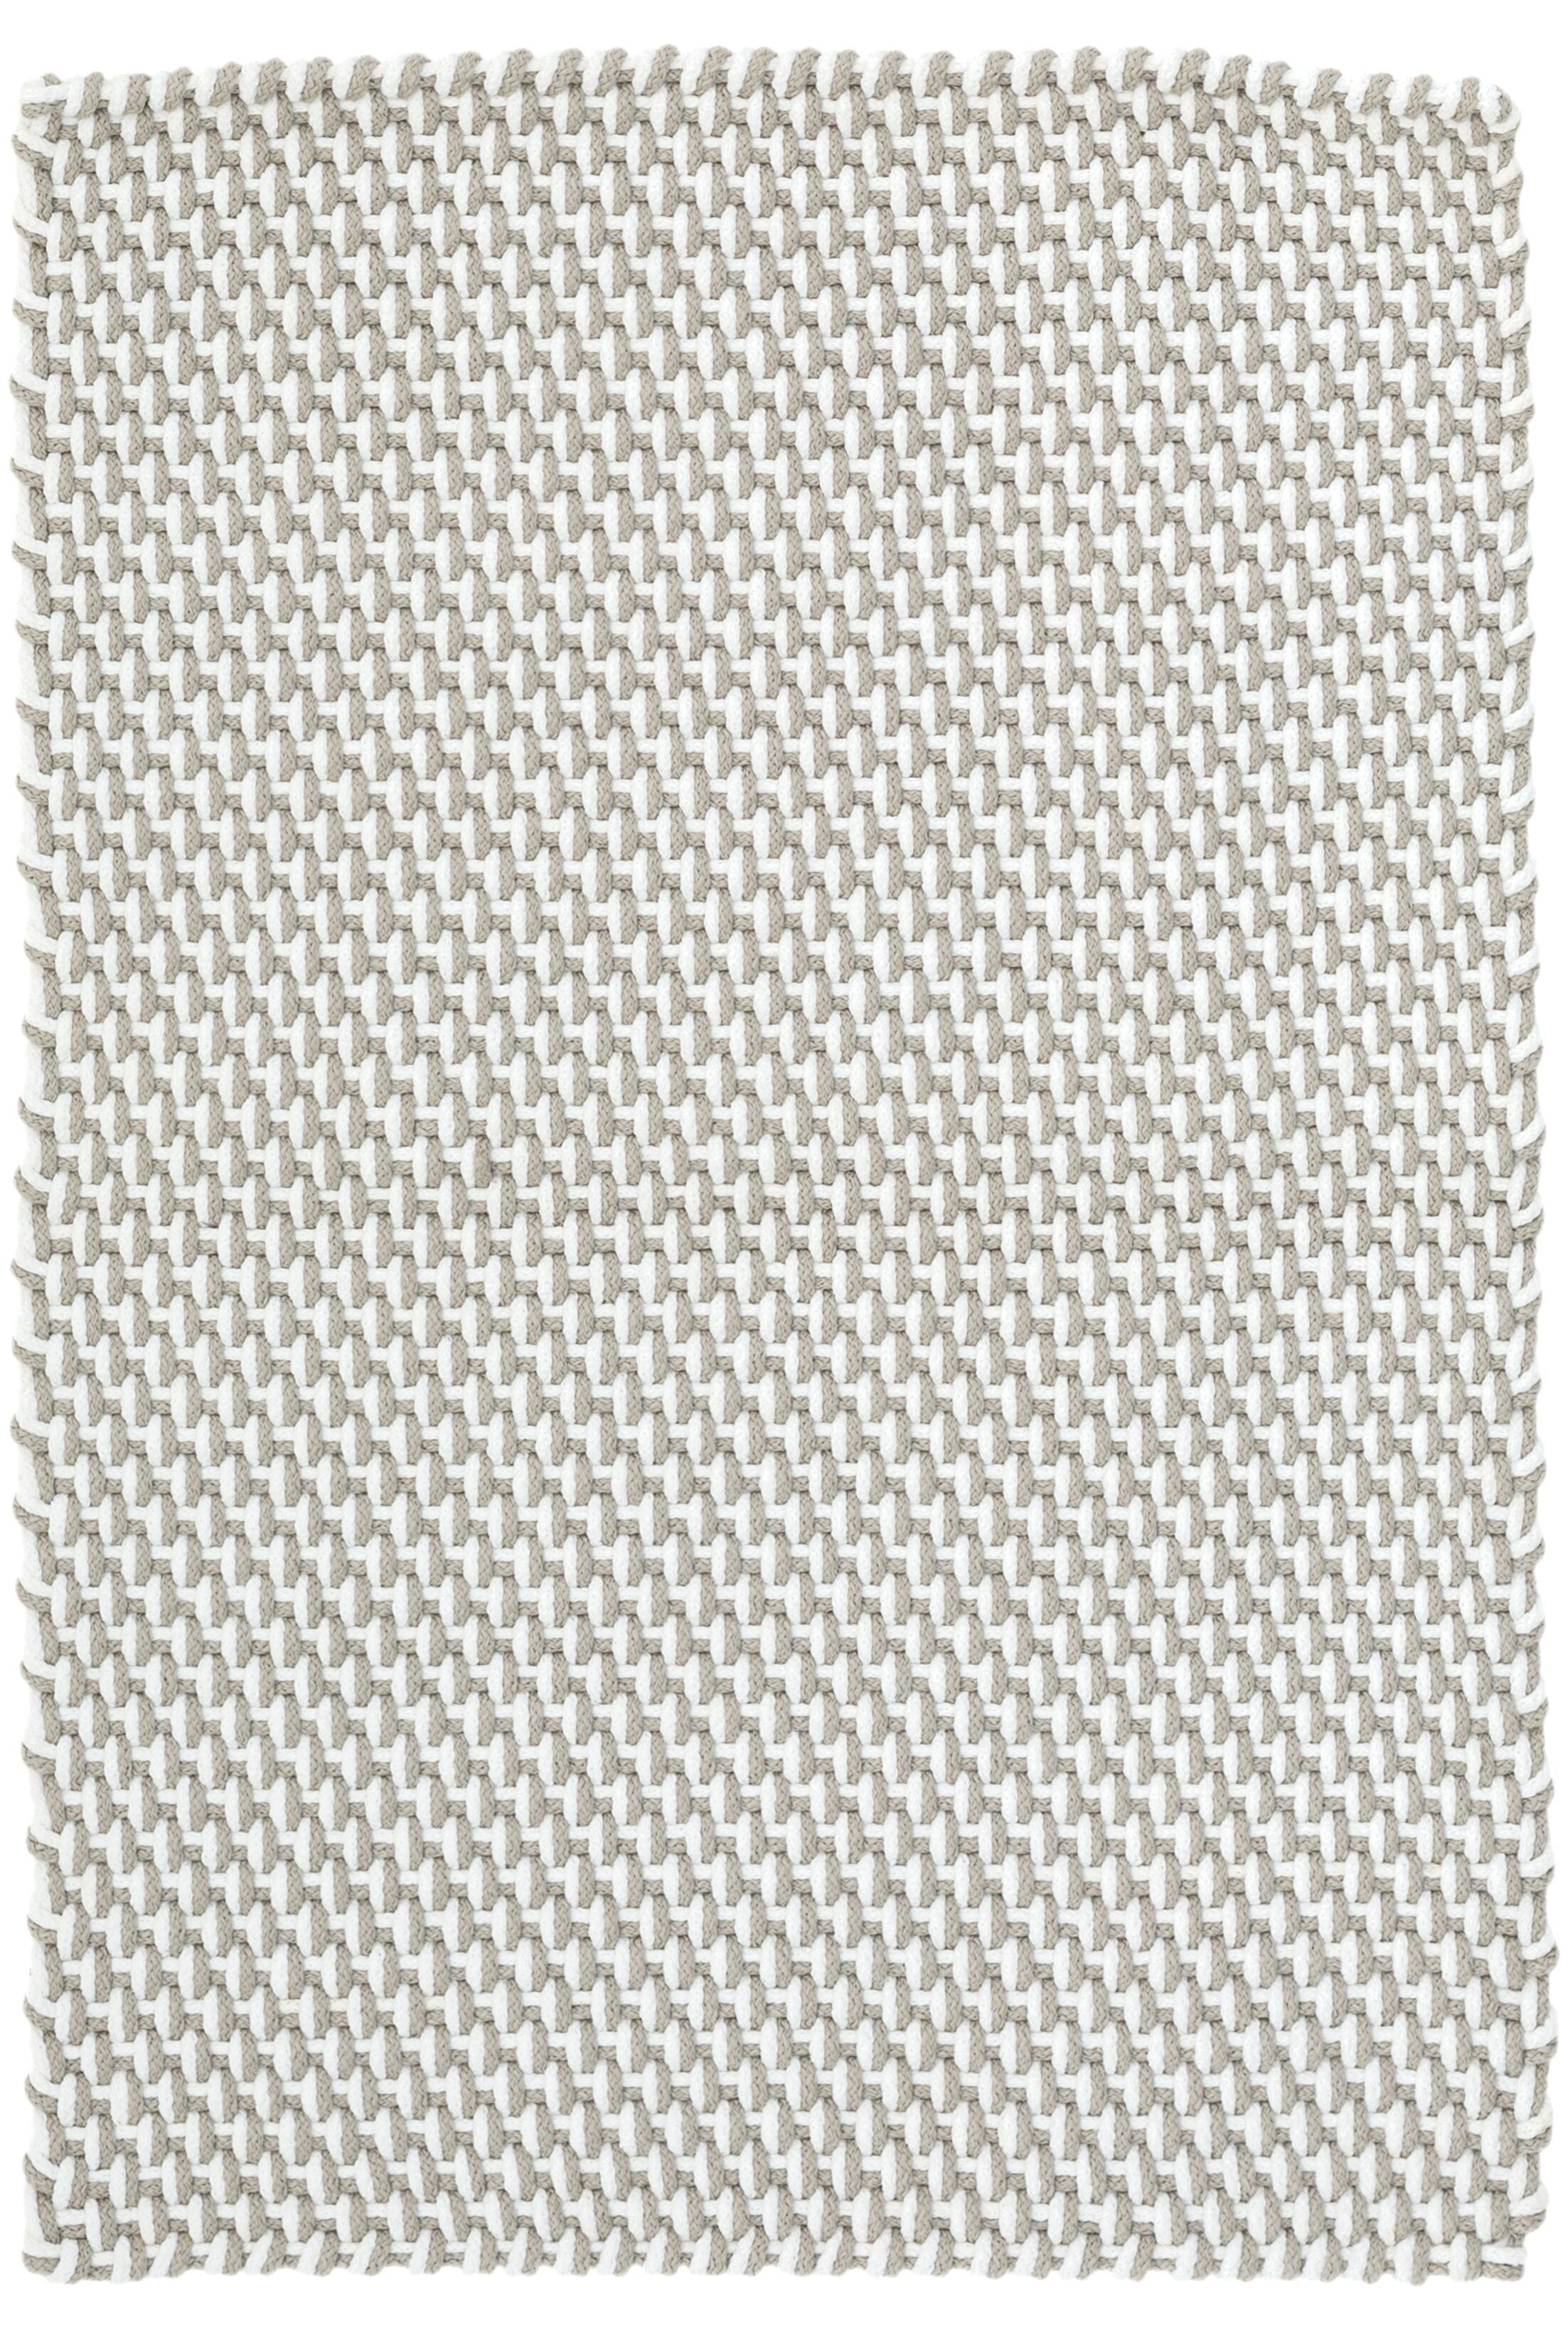 Two-Tone Rope Platinum/White Indoor/Outdoor Area Rug Rug Size: 2' x 3'